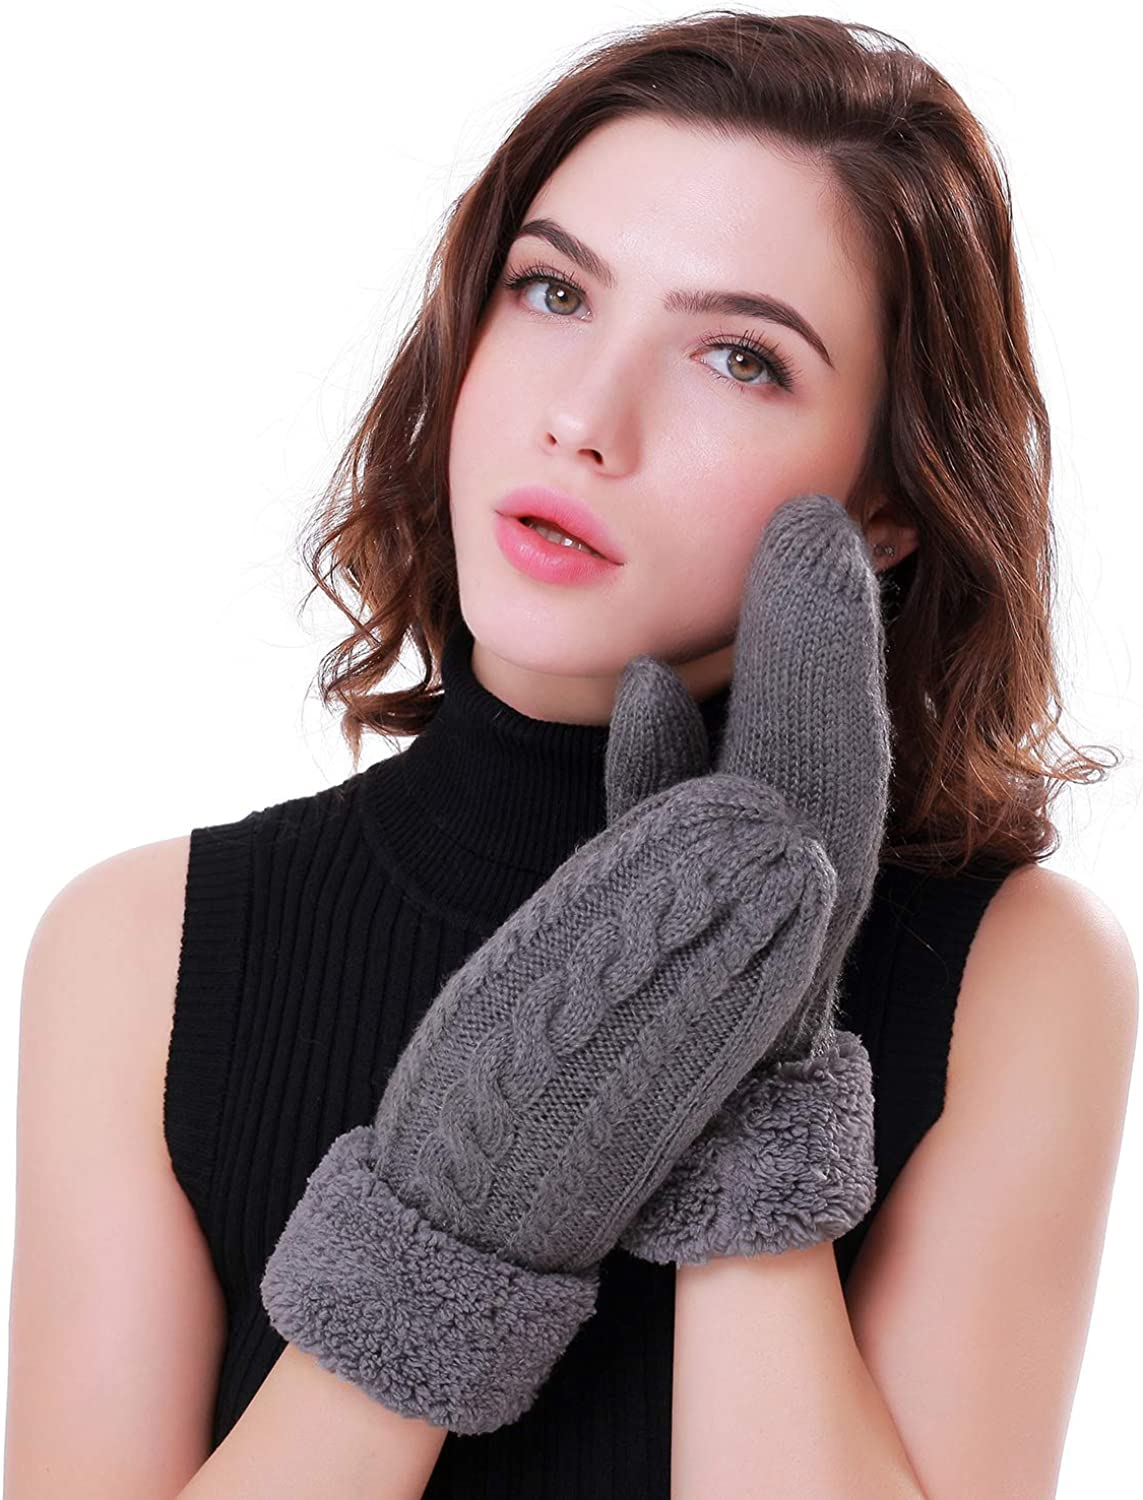 Women's Winter Gloves Warm Lining Mittens- Cozy Wool Knit Thick Gloves Novelty Mittens Winter Cold Weather Accessories